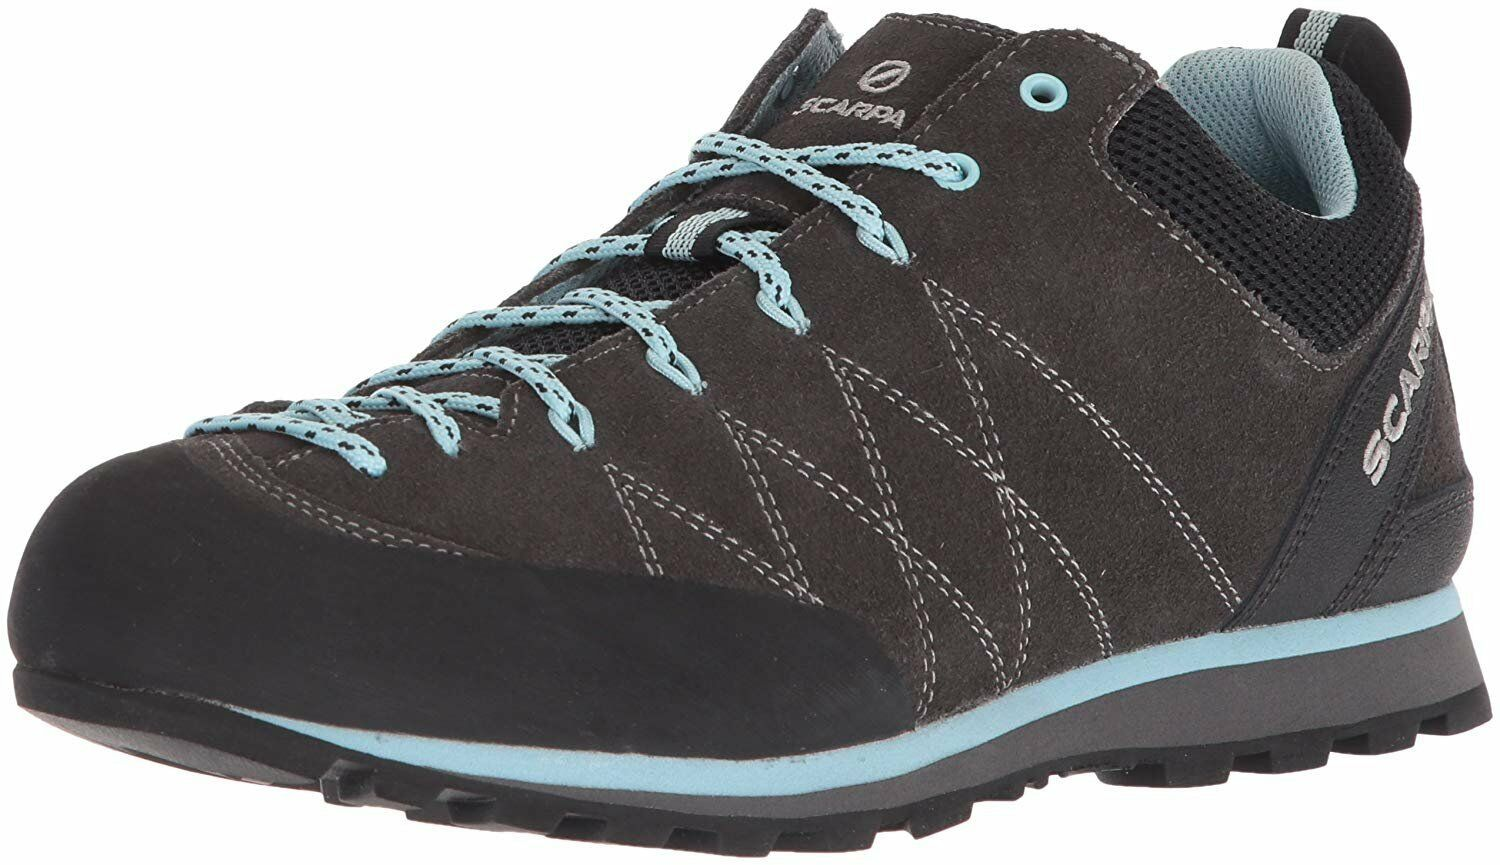 SCARPA Women's Crux Walking shoes